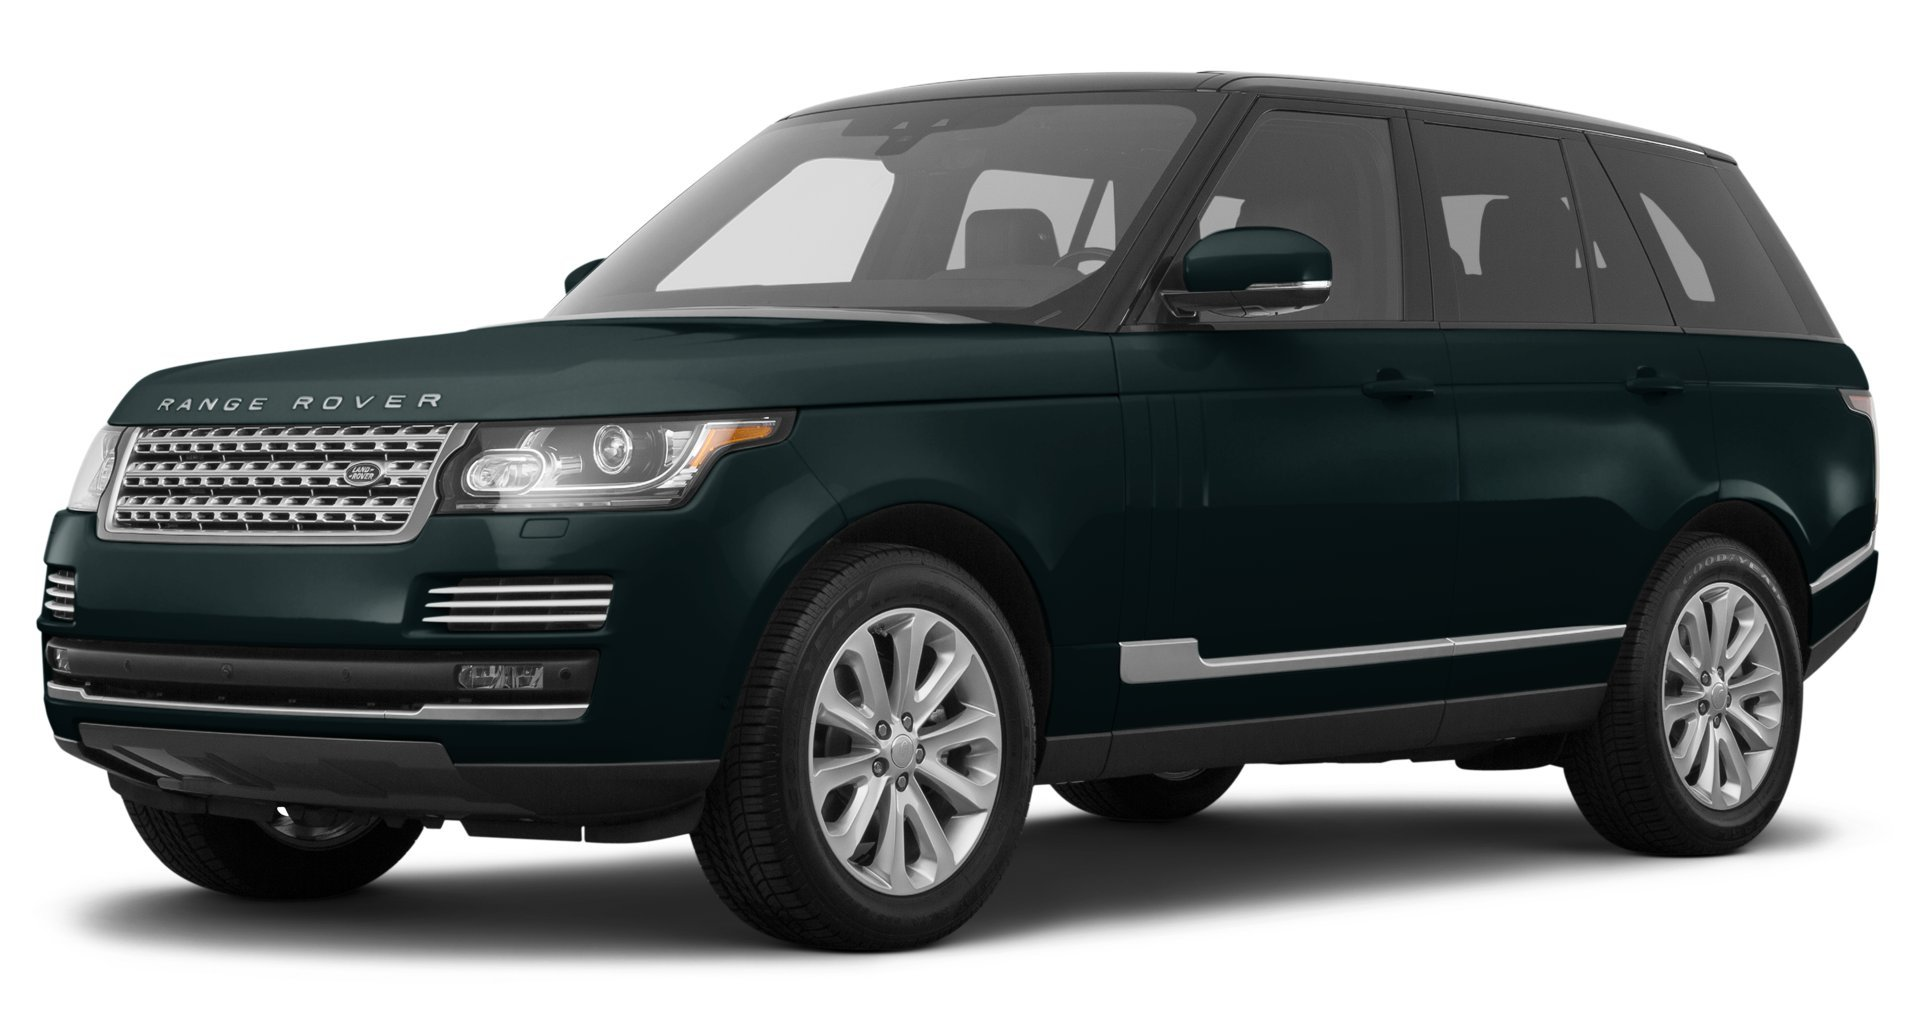 2017 land rover range rover reviews images and specs vehicles. Black Bedroom Furniture Sets. Home Design Ideas